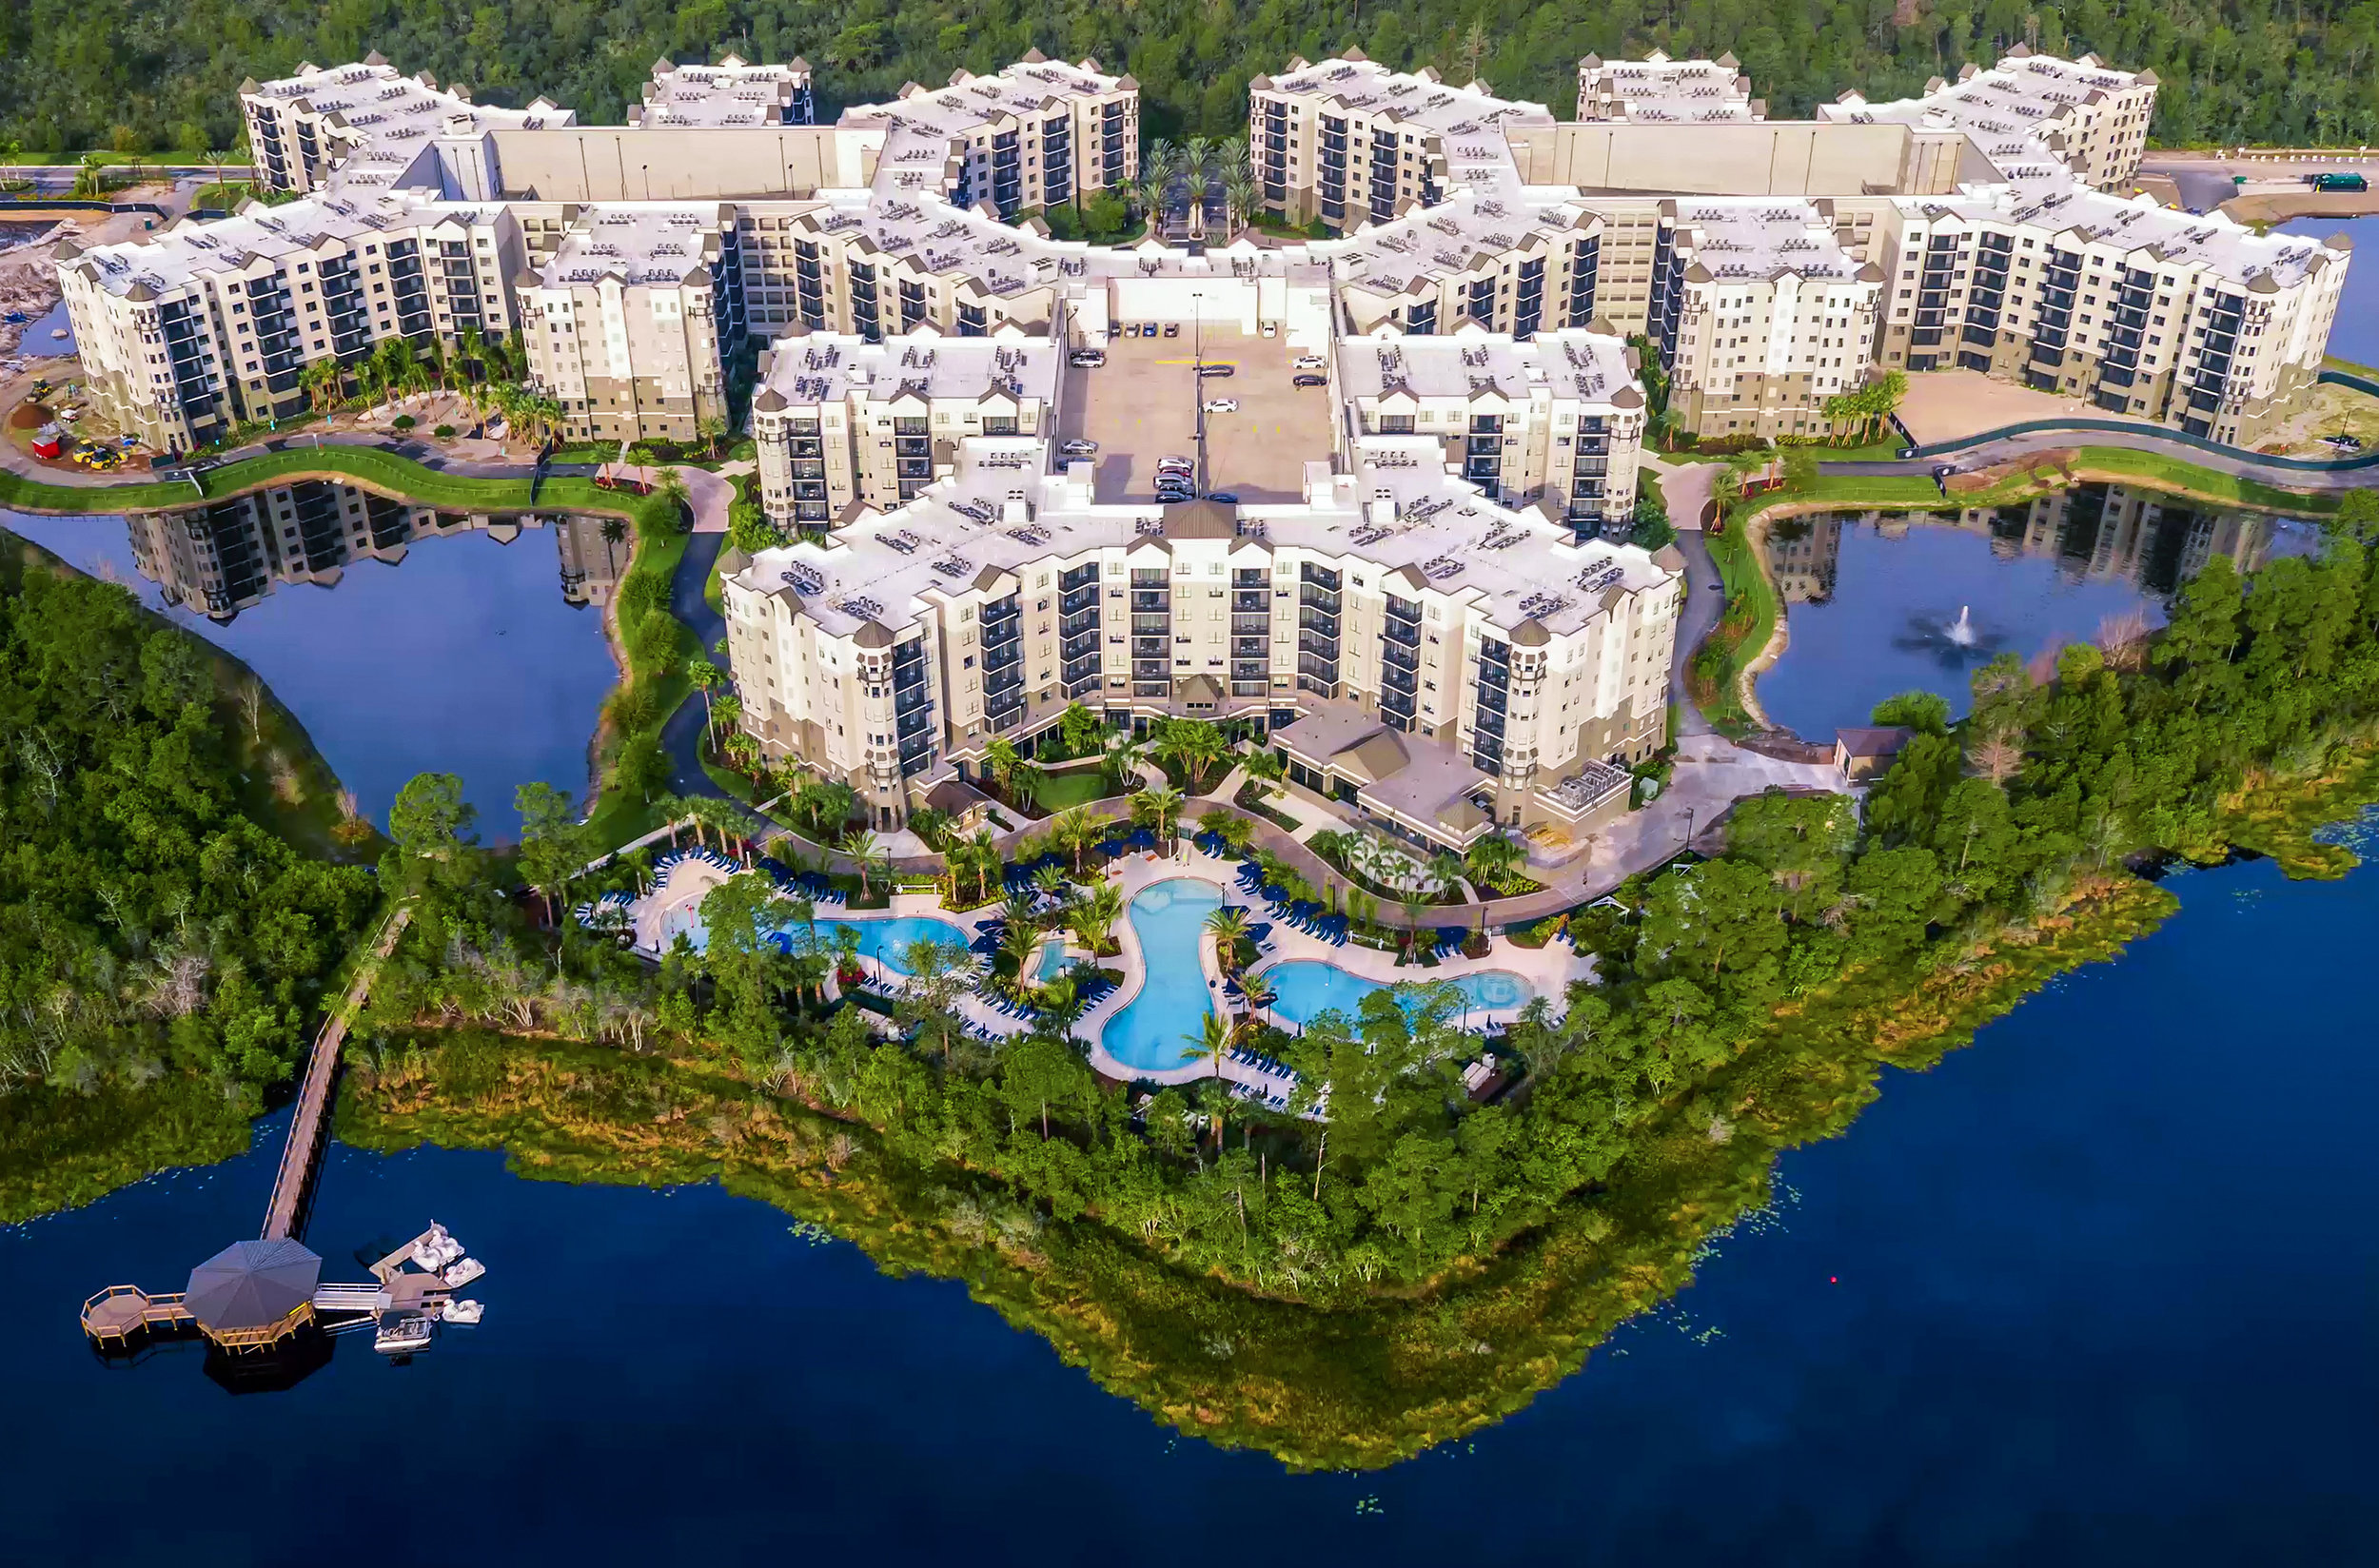 Here's the whole kit-and-caboodle, except the under-construction surf and water park that will be exclusively for The Grove Resort and Spa Orlando guests. You can see the towers, the pool complex and the dock.